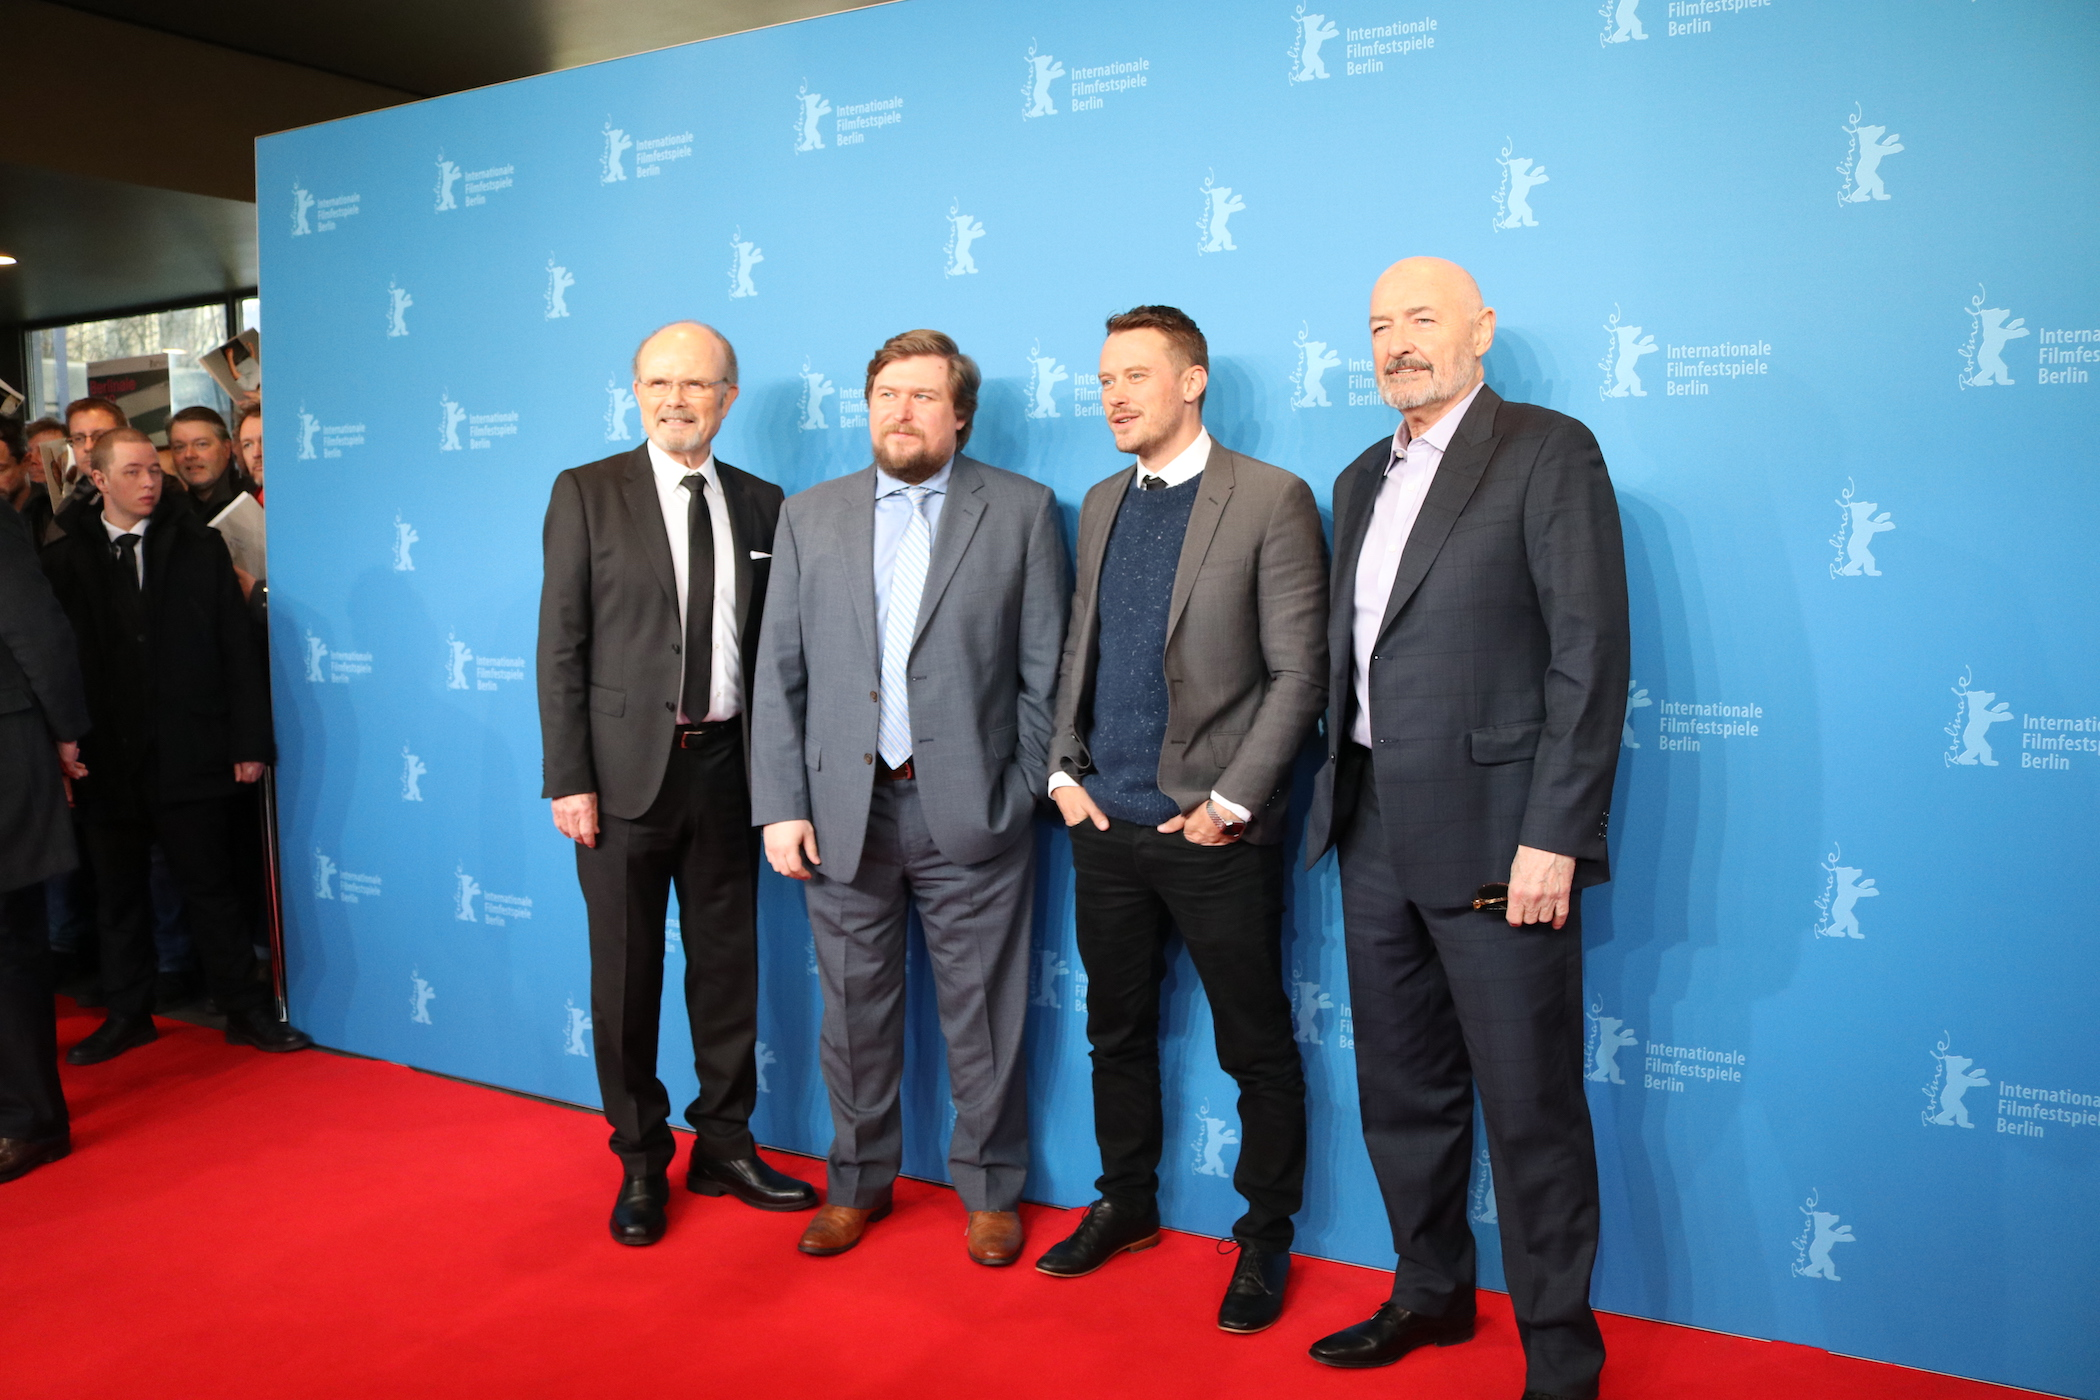 Berlino 2017: uno scatto di Terry O'Quinn, Michael Dorman, Kurtwood Smith, Michael Chernus sul red carpet di Patriot